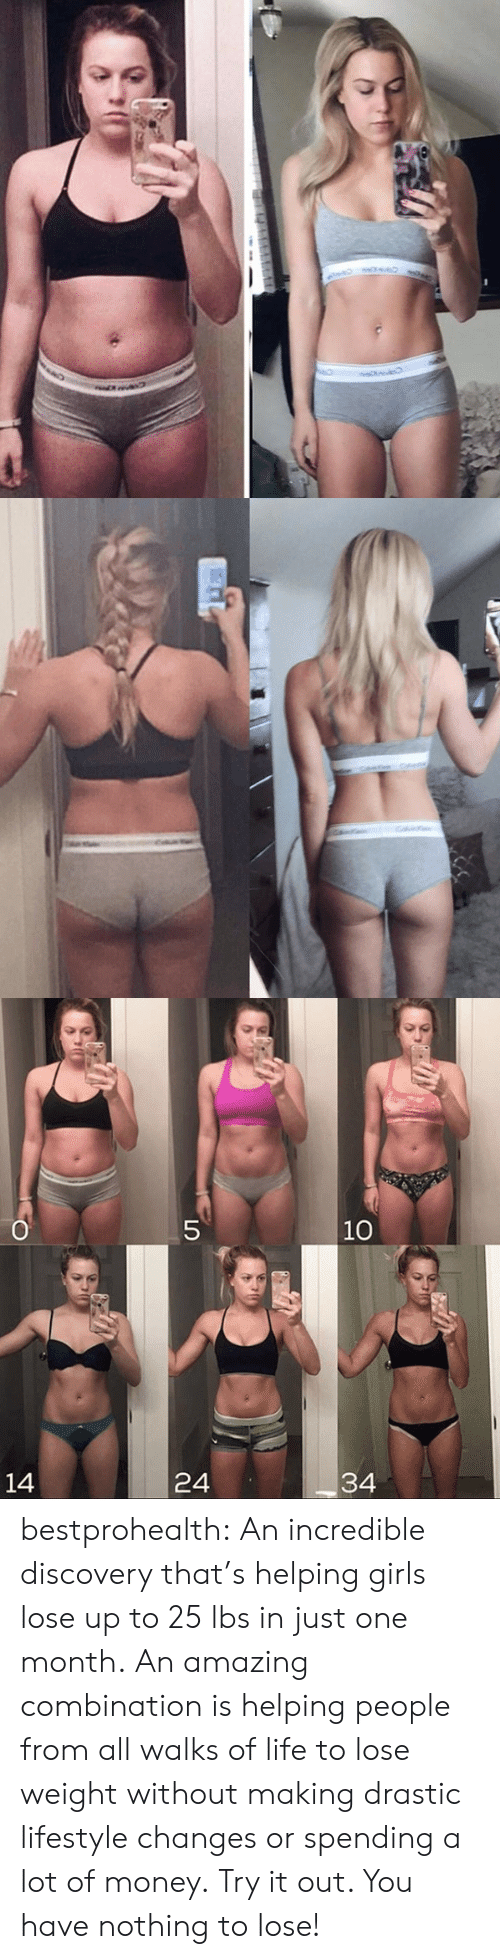 weight loss: O  5  10  34  24  14 bestprohealth:  An incredible discovery that's helping girls lose up to 25 lbs in just one month. An amazing combination is helping people from all walks of life to lose weight without making drastic lifestyle changes or spending a lot of money. Try it out. You have nothing to lose!